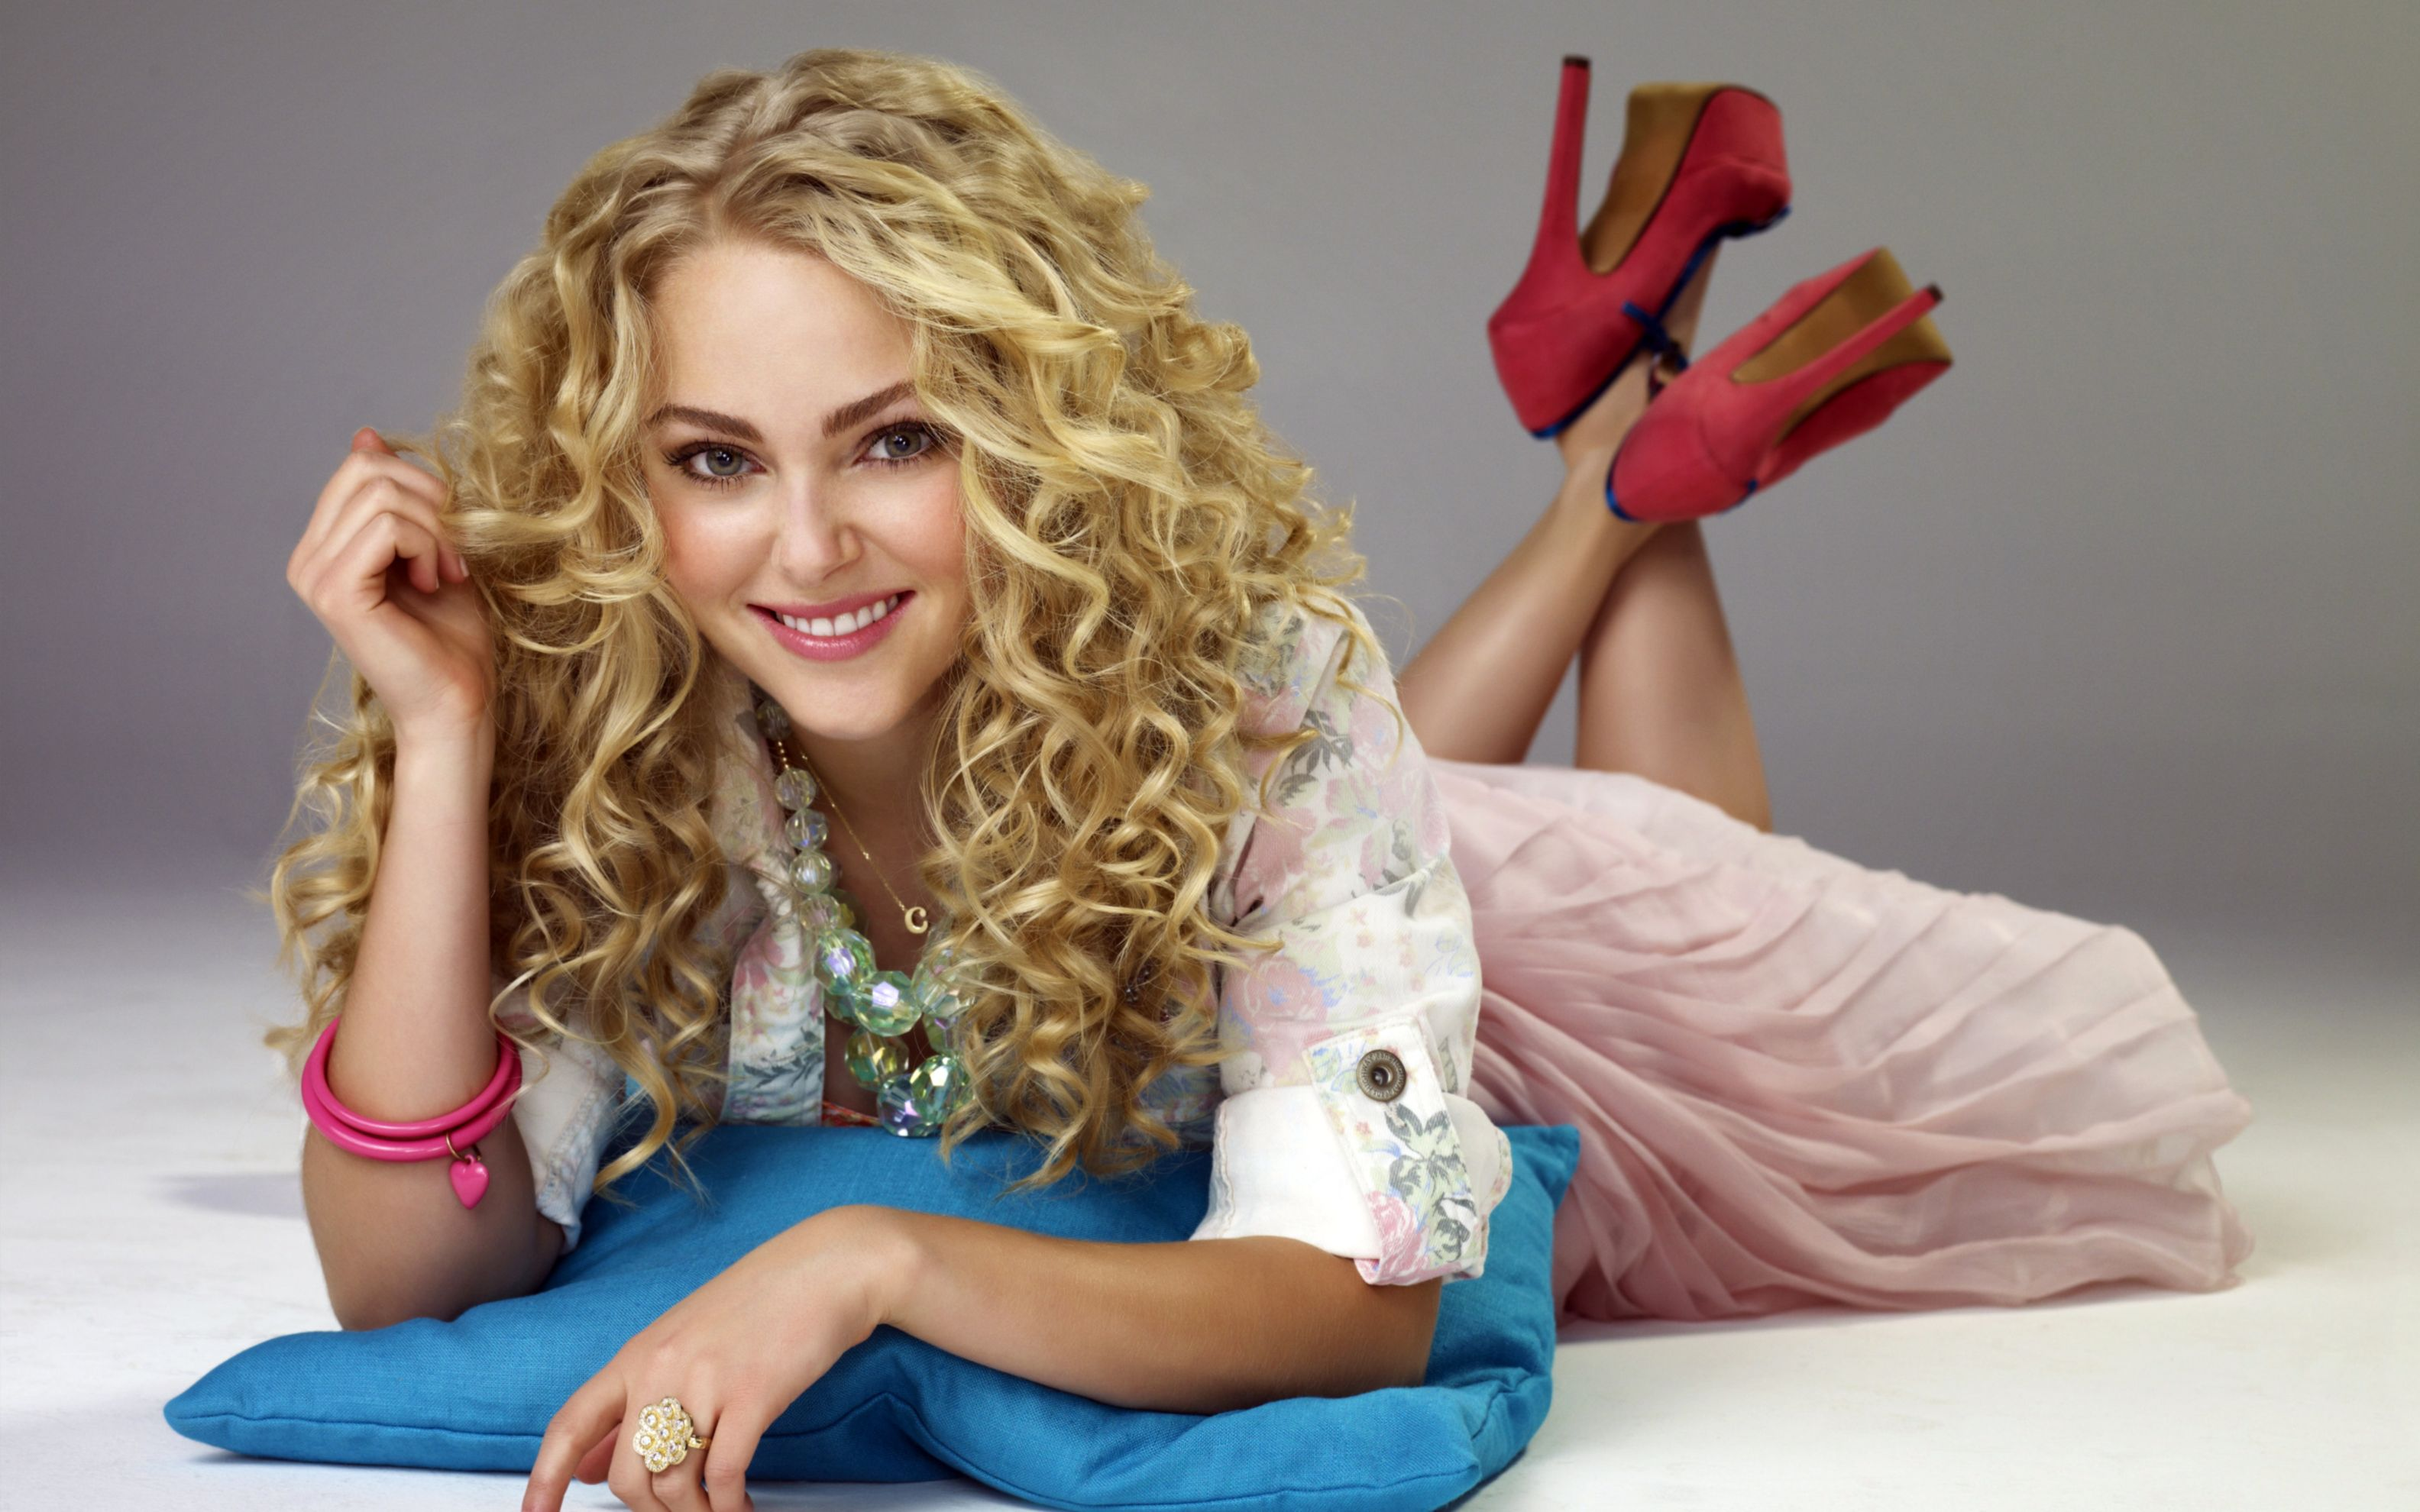 Download free HD Annasophia Robb Wide Wallpaper, image